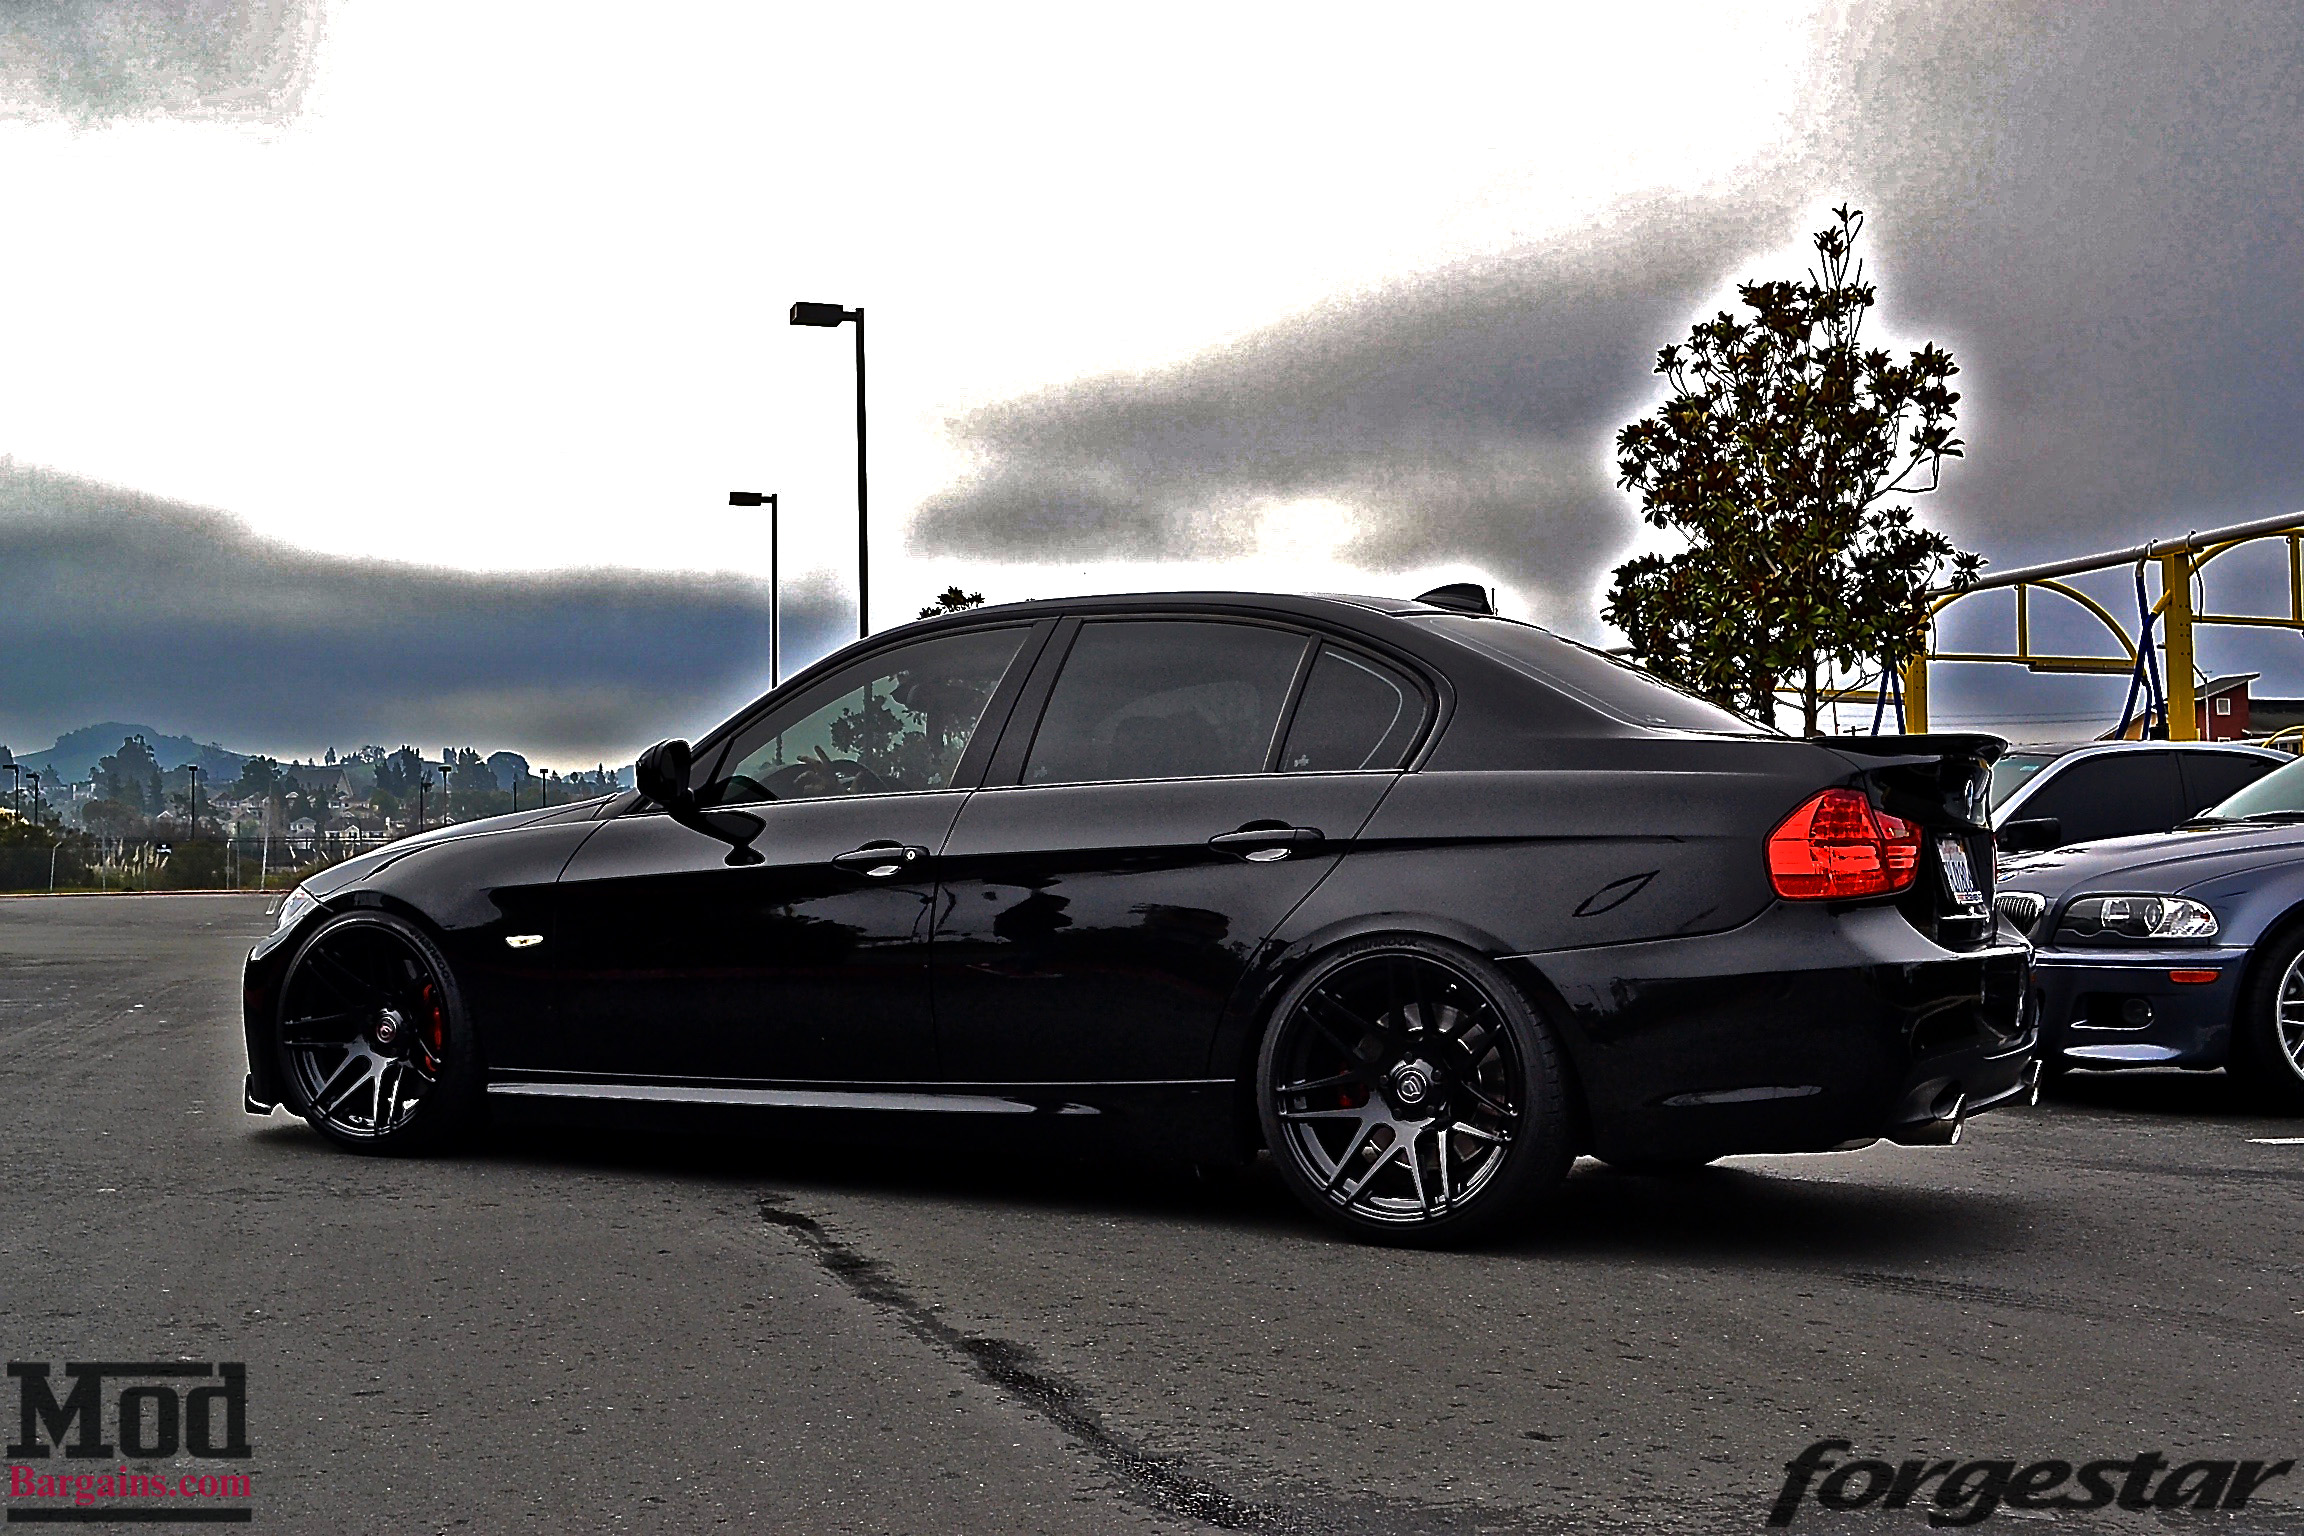 Cole Durden S E90 335i Brings The Fight On Forgestar F14 Super Deep Concave Wheels Modbargains